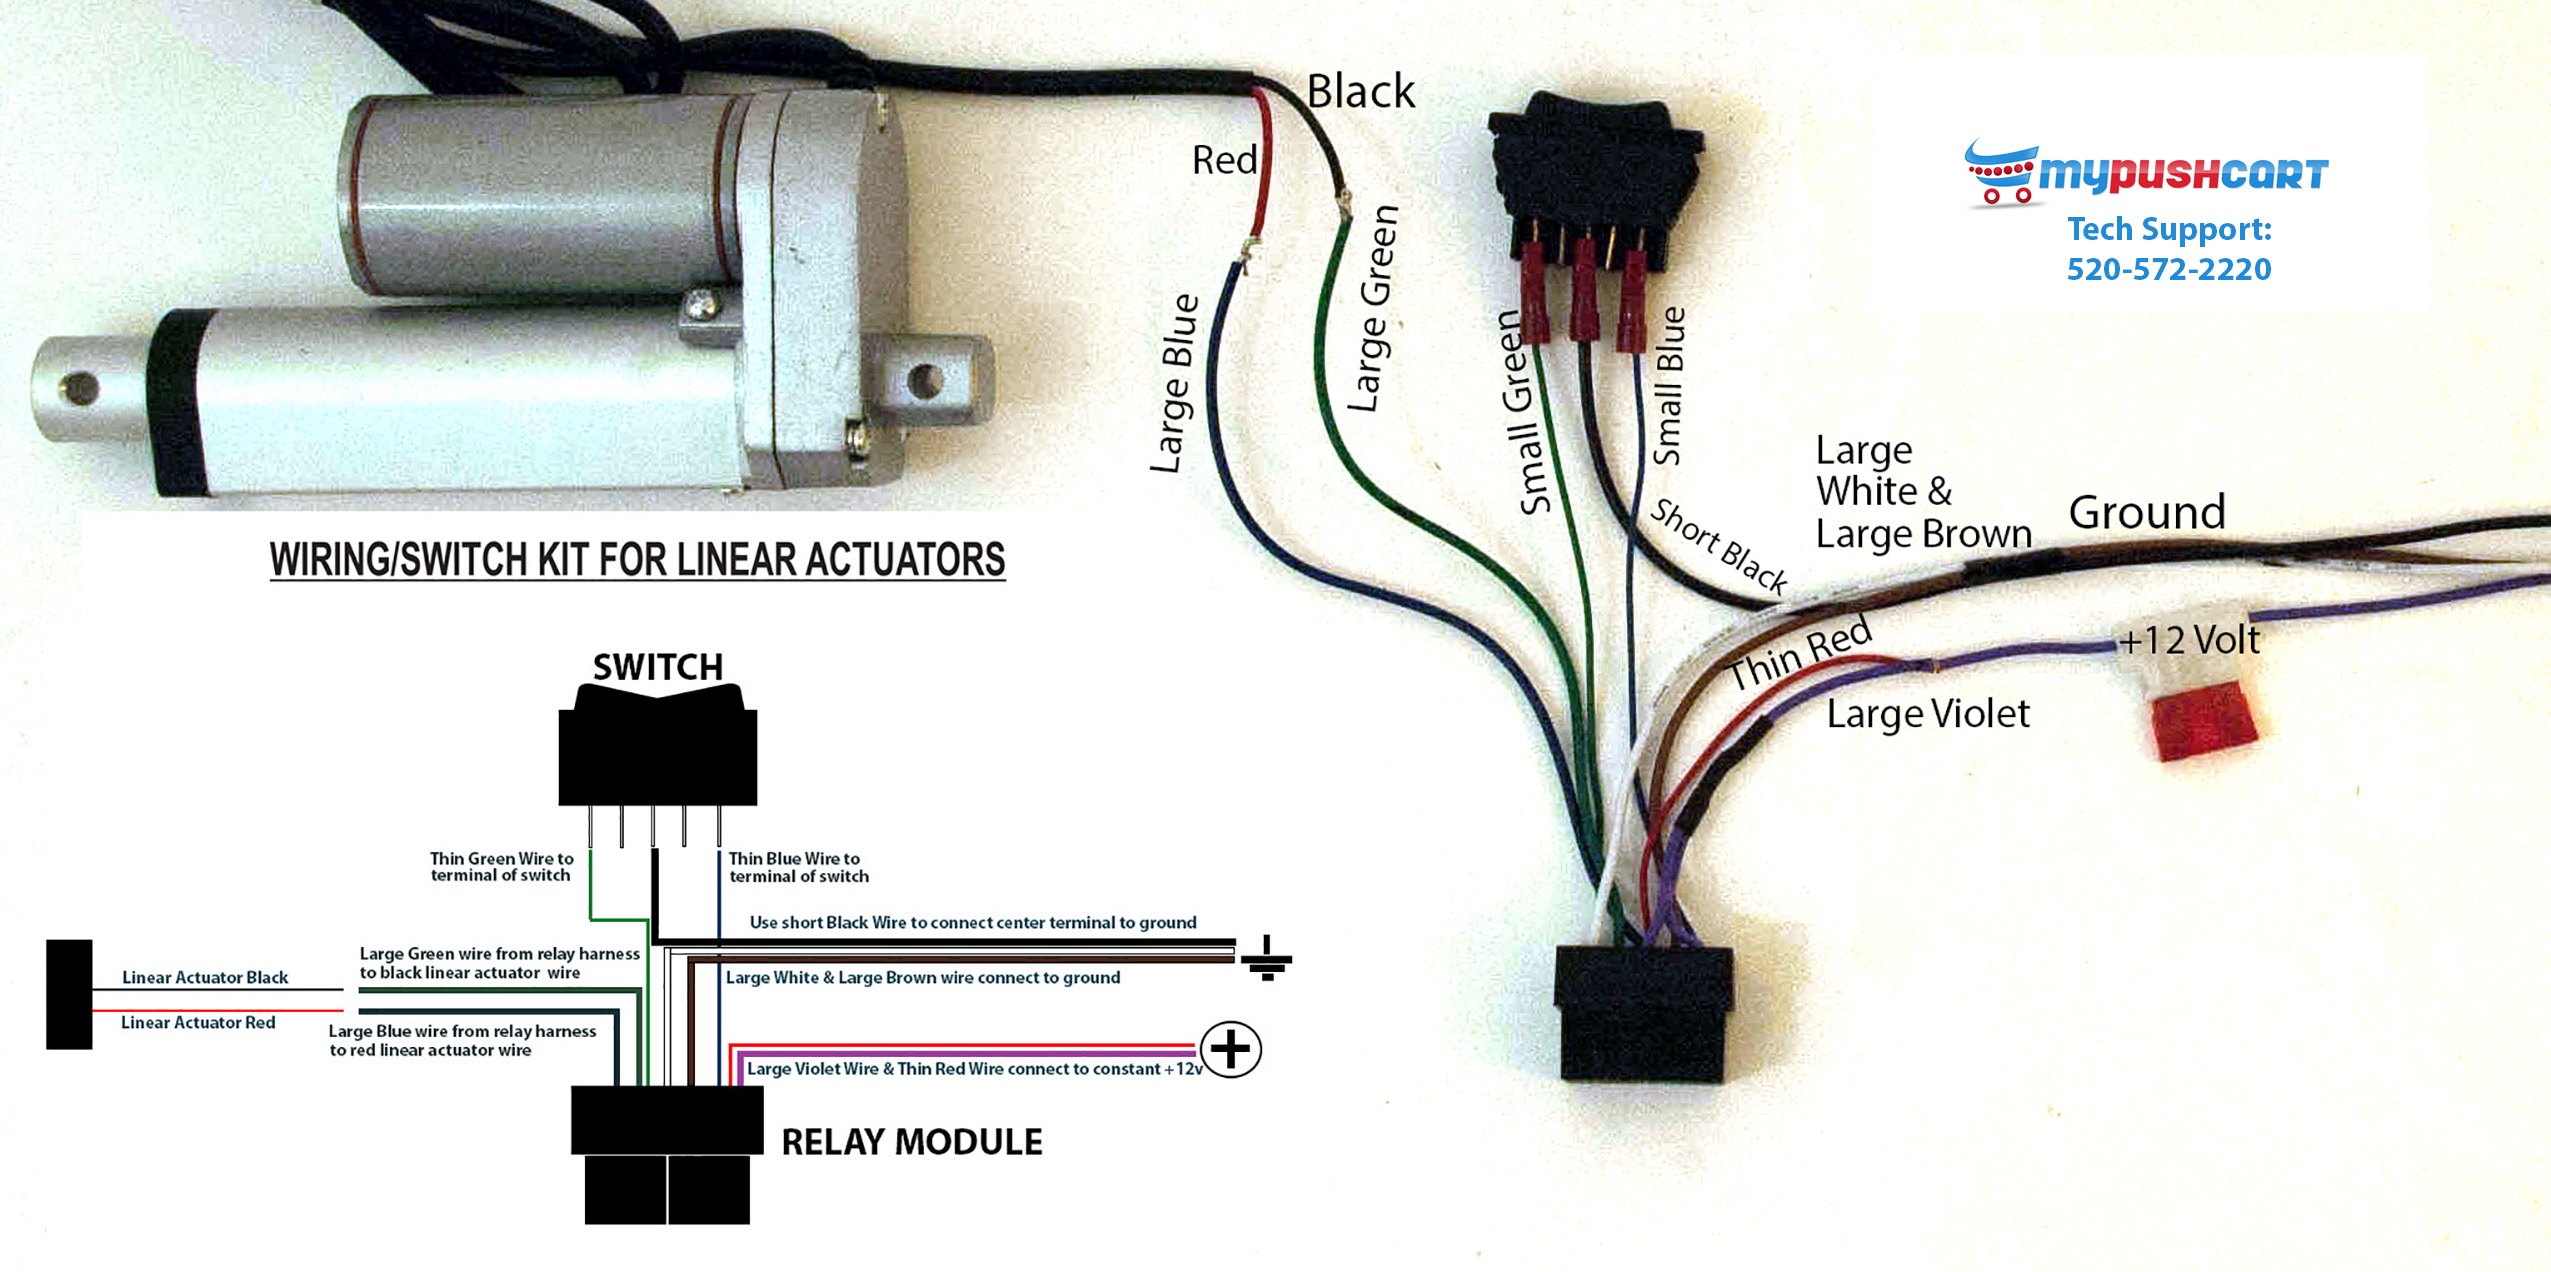 12 Volt Actuator Wiring Diagram Schematic Wiring Diagrams on 12v Photocell Wiring Diagram